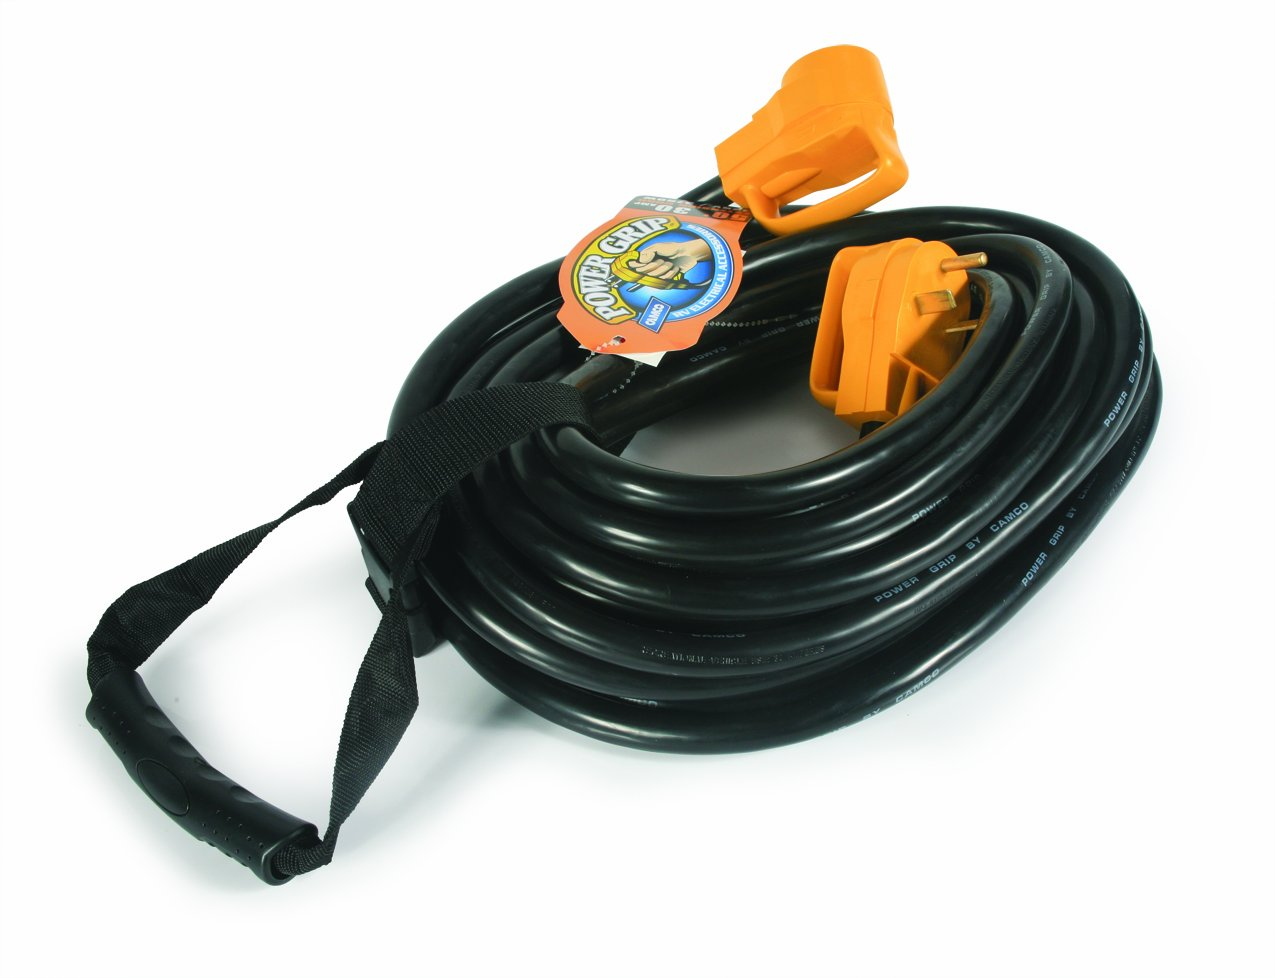 Camco Heavy Duty RV Auto Extension Cord with PowerGrip Handle, Includes Convenient Carrying Strap - 50ft (10 Gauge, 30 Amp) (55197)